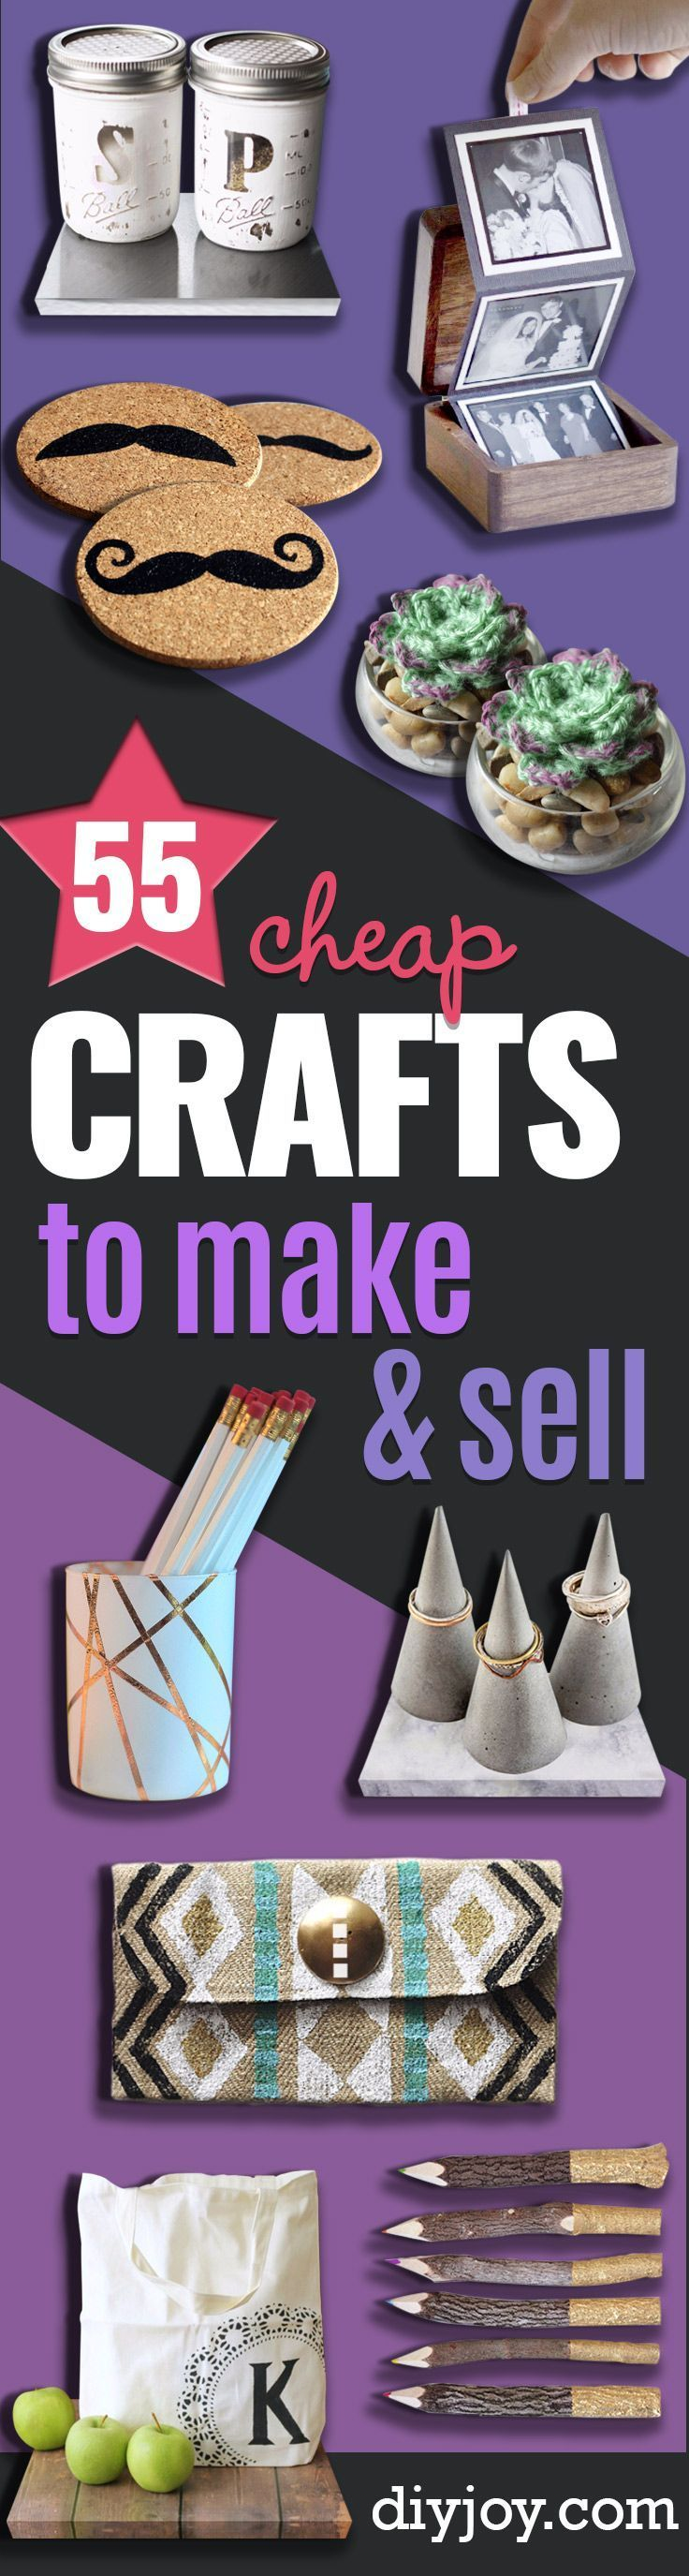 98 best images about craft items to make to sell on